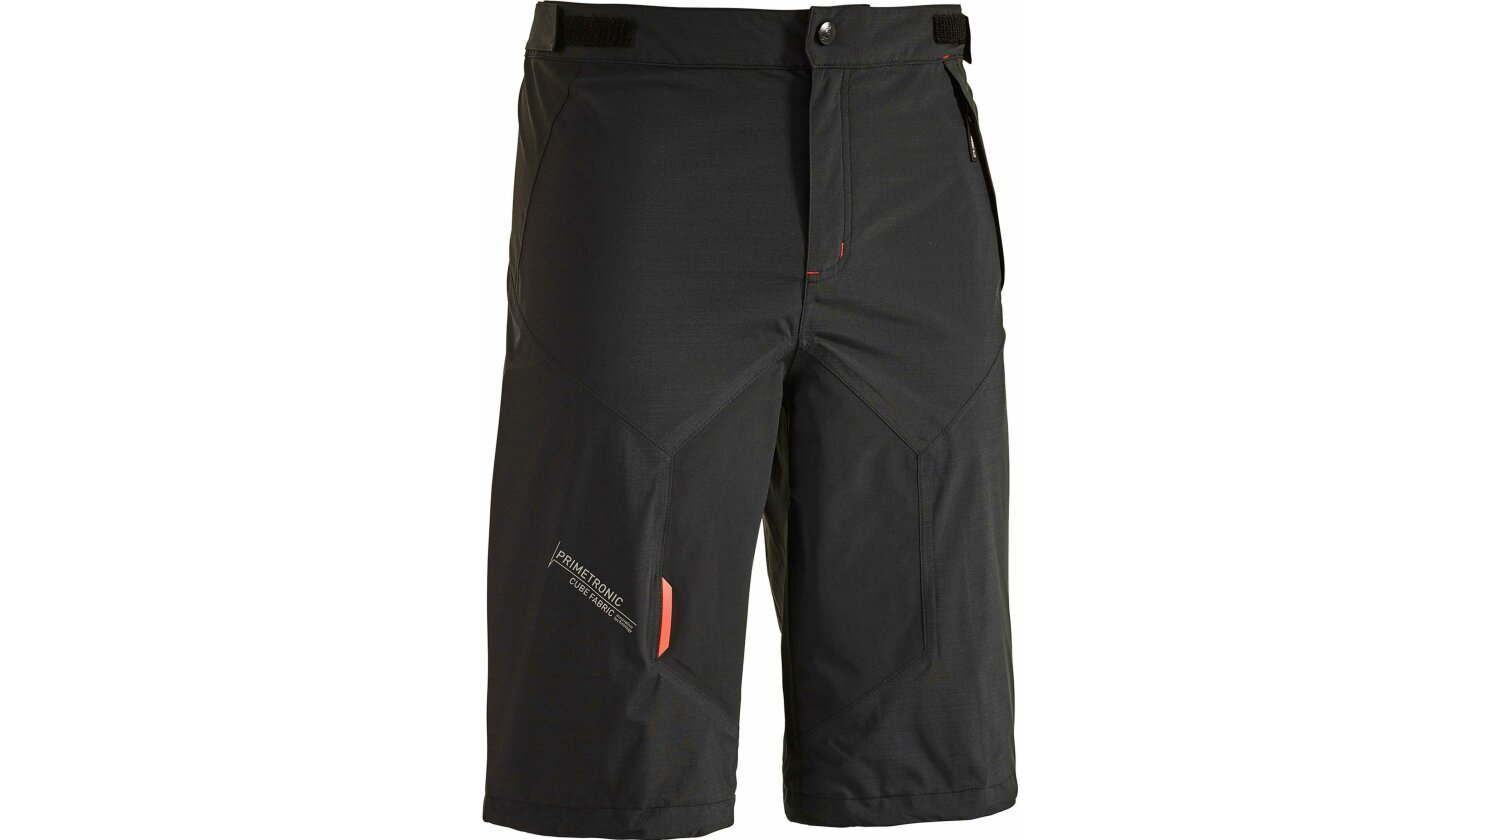 Cube BLACKLINE Regenhose kurz black´n´grey XL